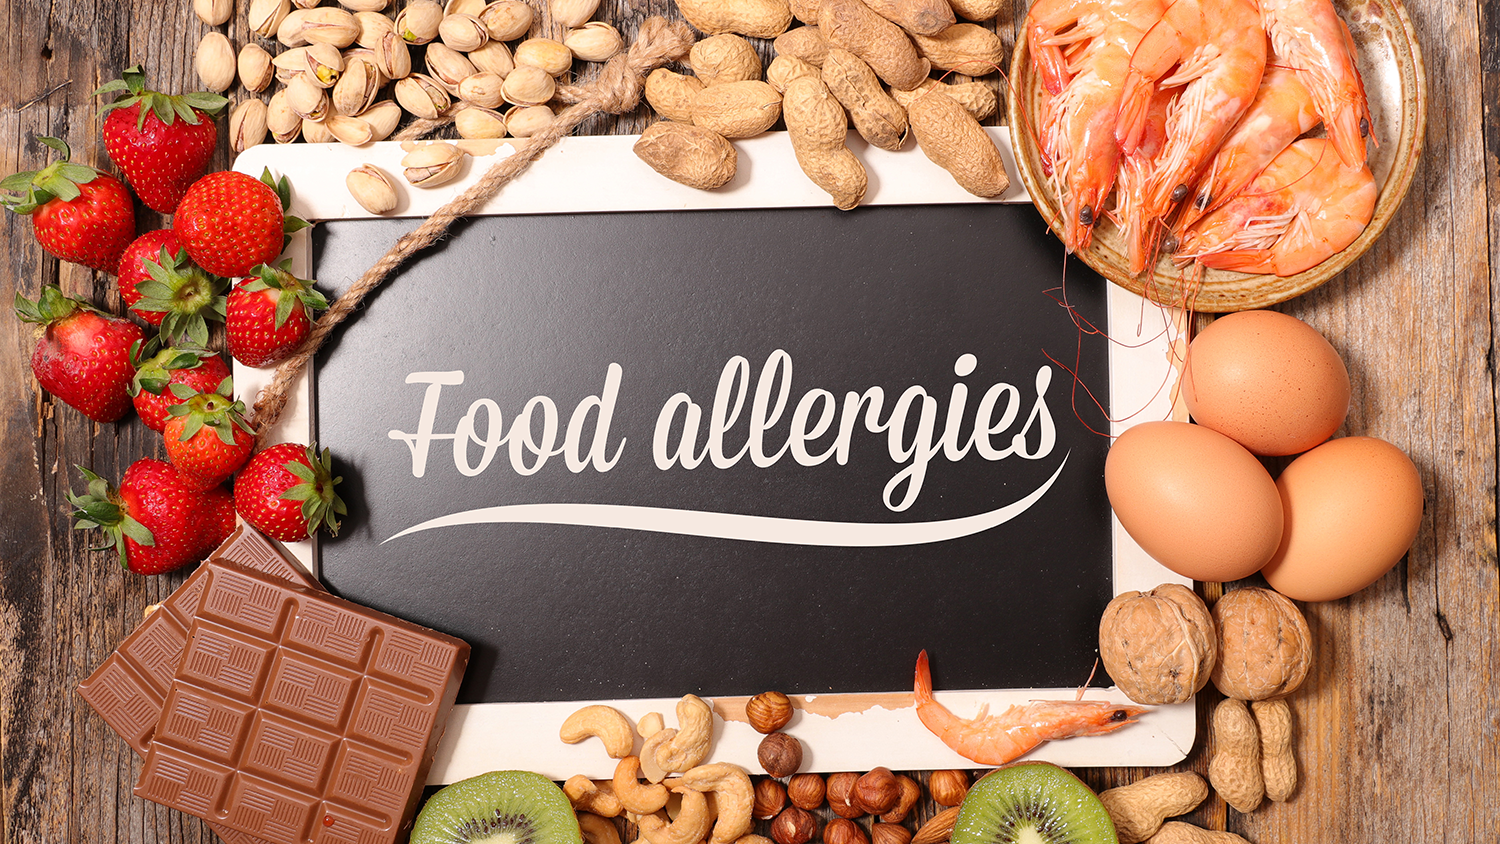 Tabletop Tablets can easily show guests menu item ingredients so they can avoid food allergies.